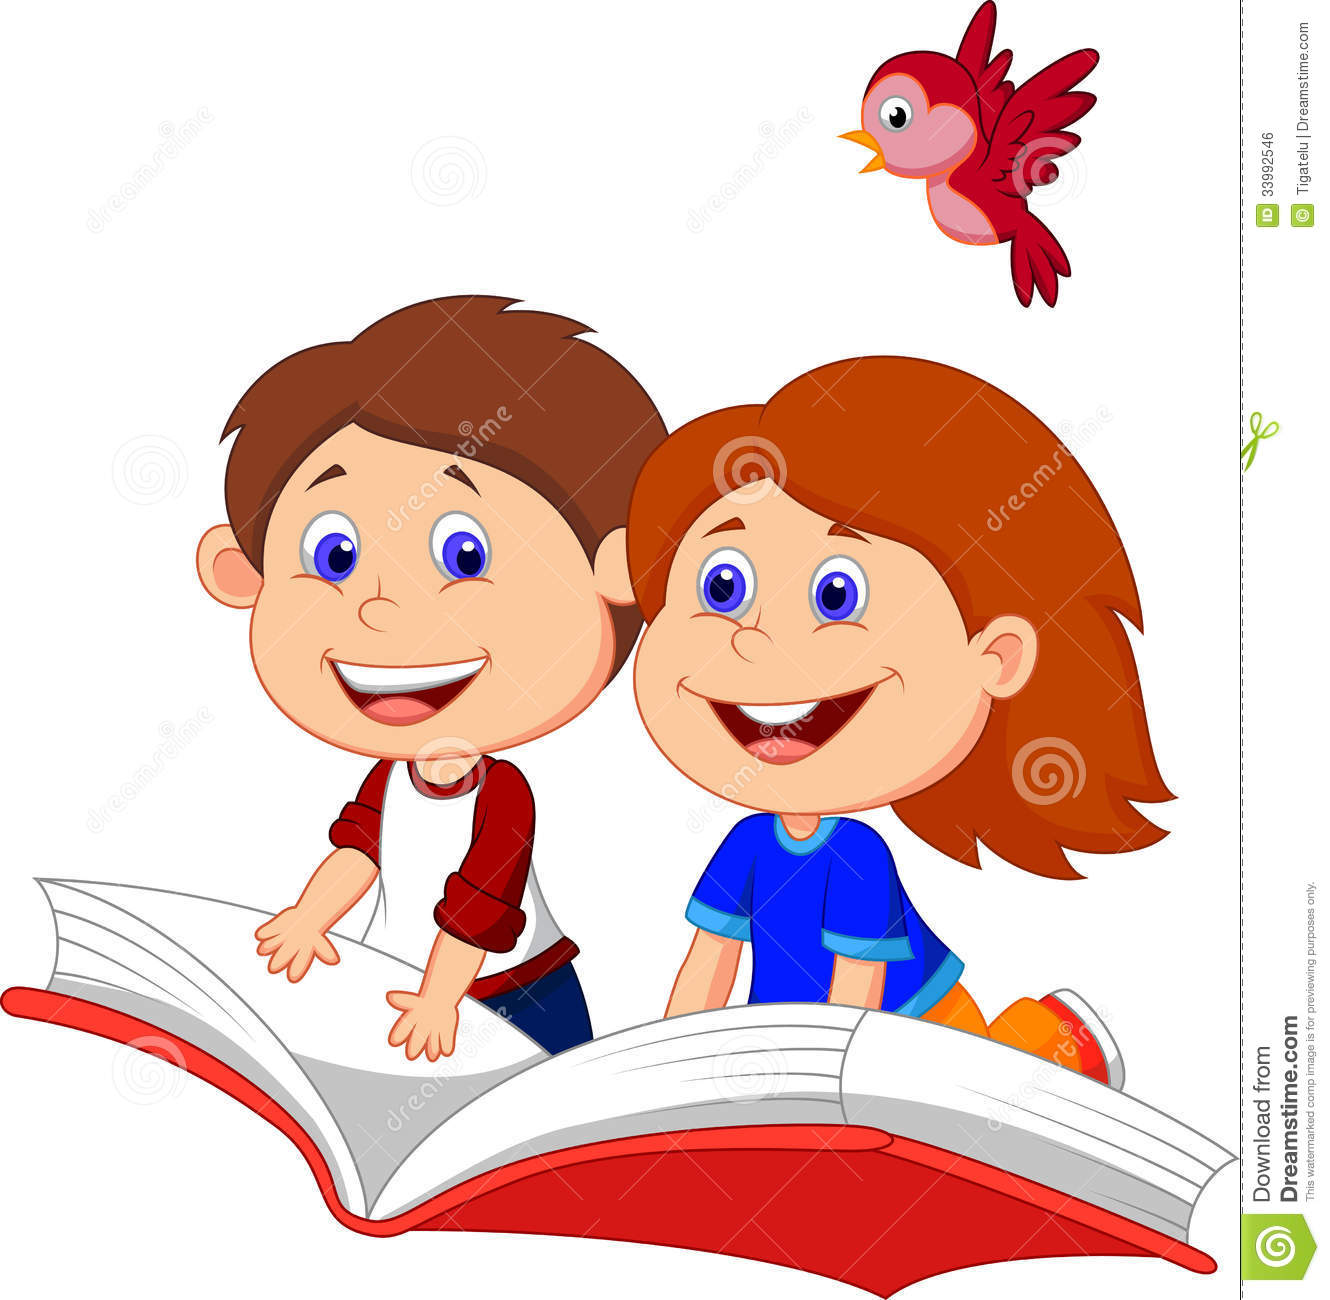 Royalty Free Stock Image Cartoon Boy Girl Flying Book Illustration Image33992546 on on studying laptop cartoon